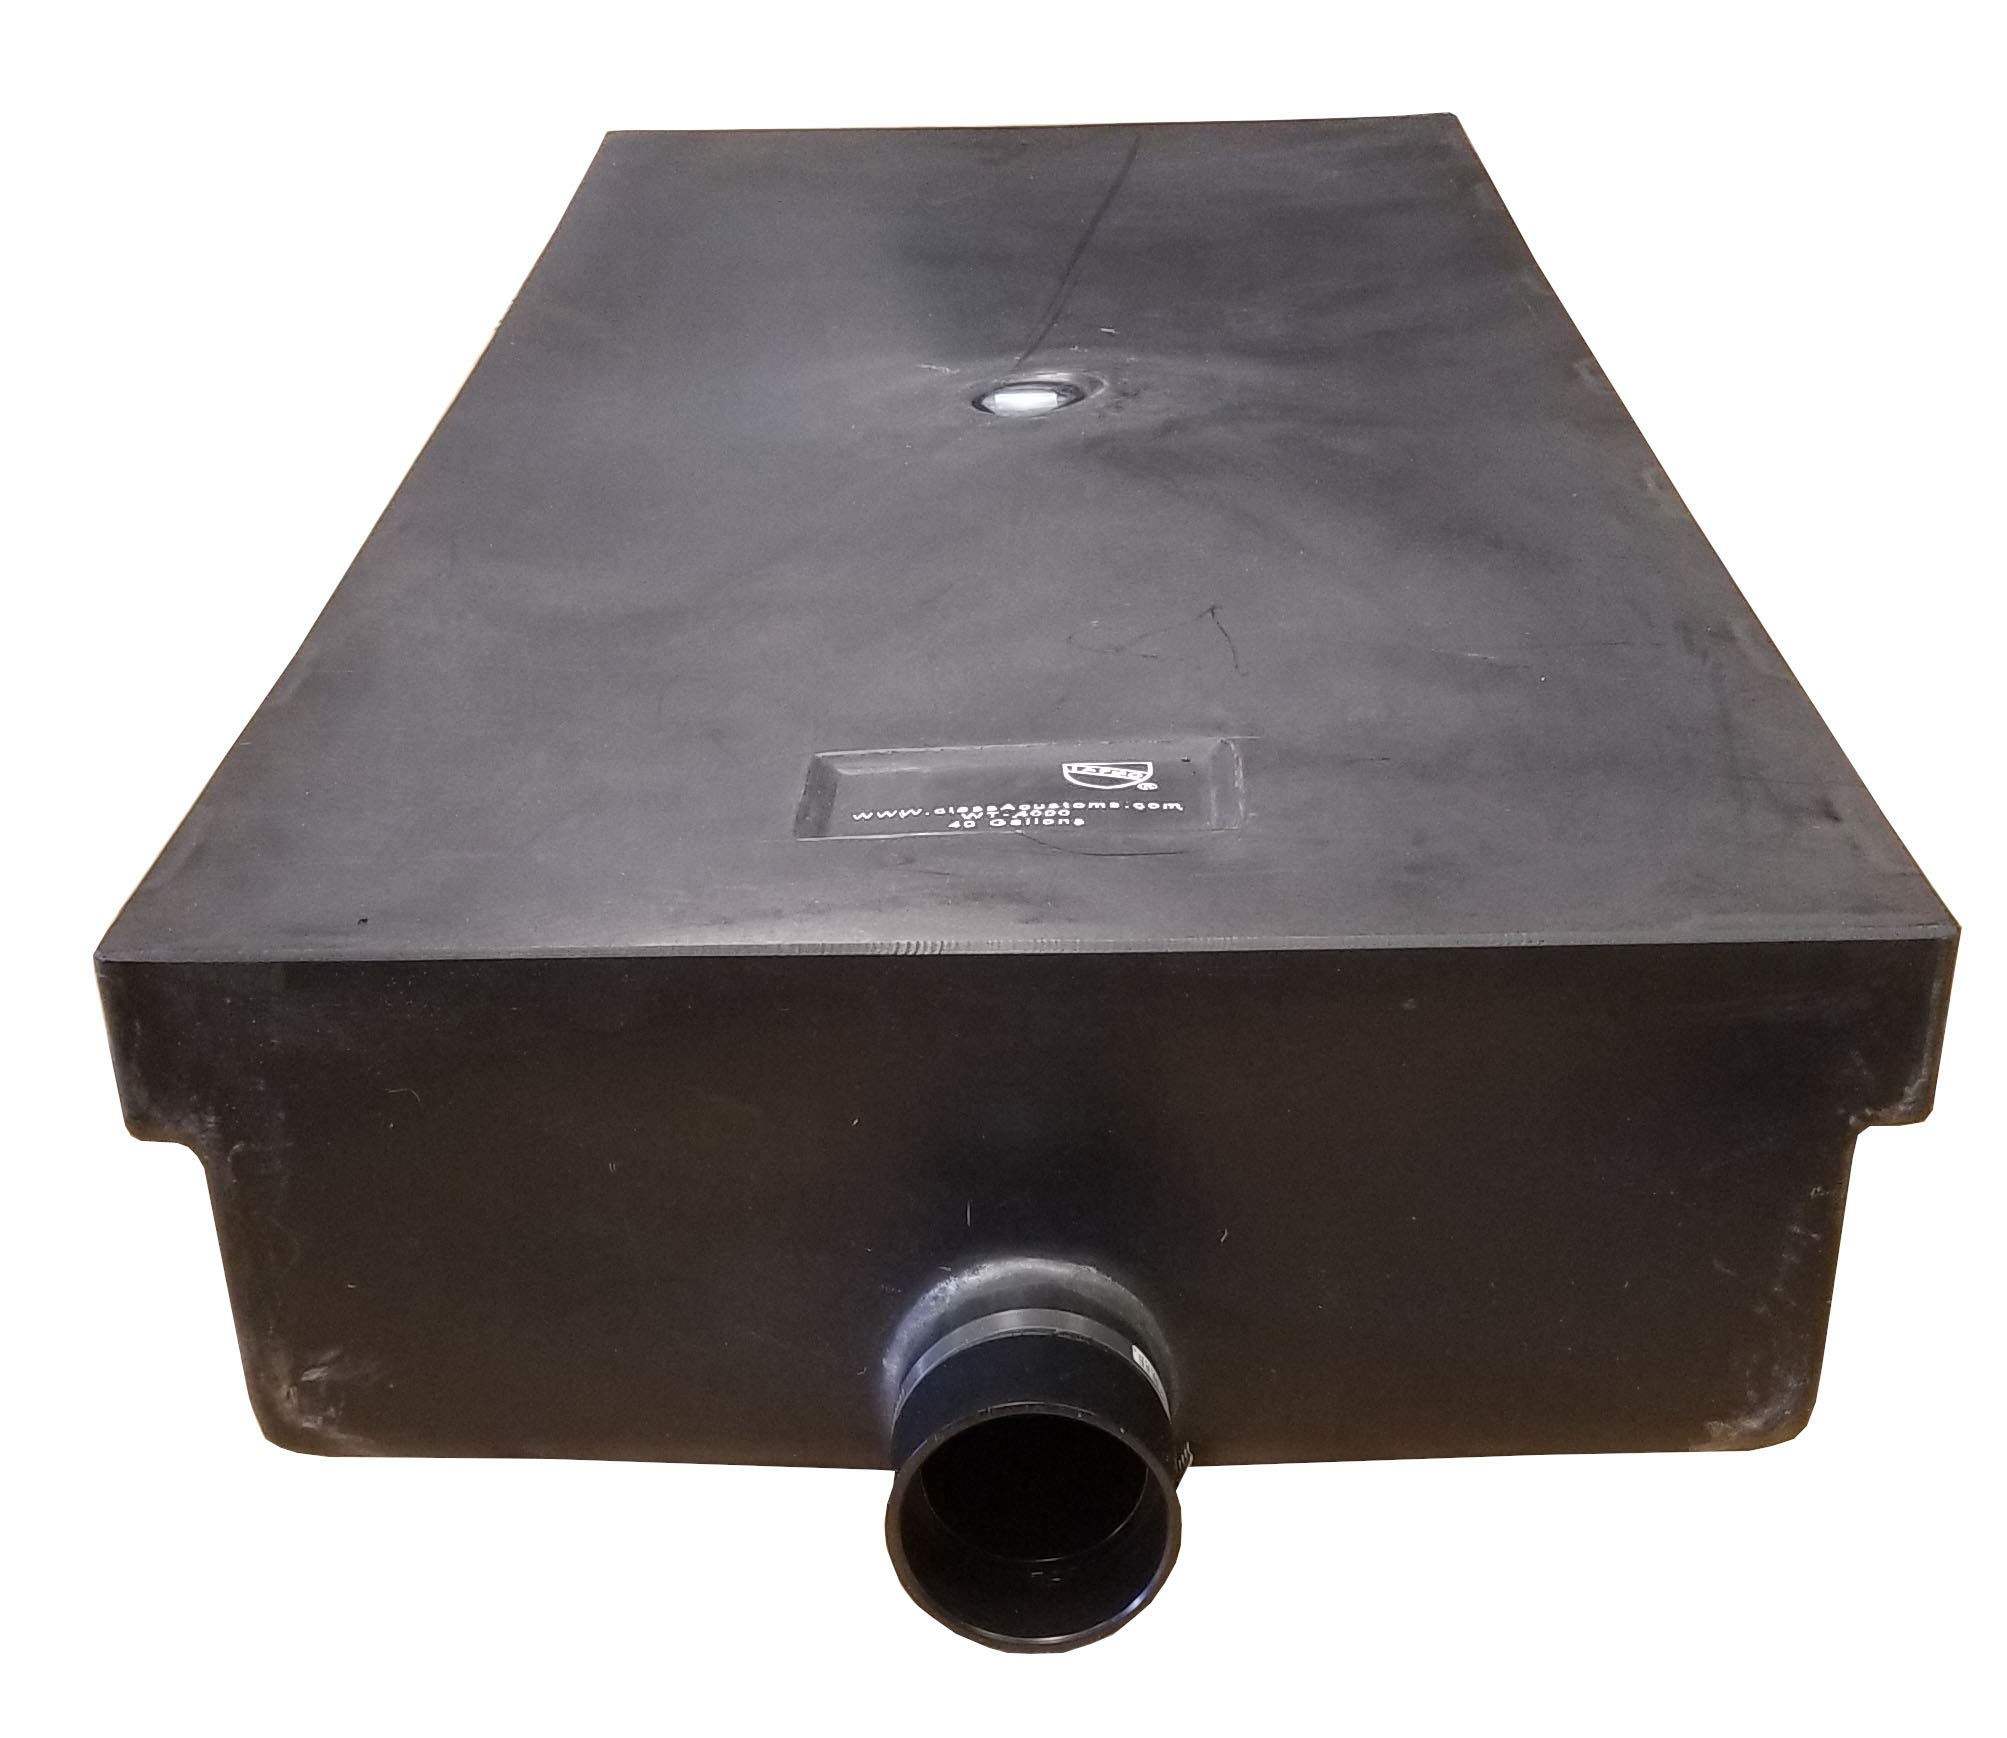 Class A Customs 40 Gallon RV Waste Black Gray Water Holding Tank Concession 56.50'' x 24.50'' x 9'' WT-4000 by Class A Customs (Image #1)